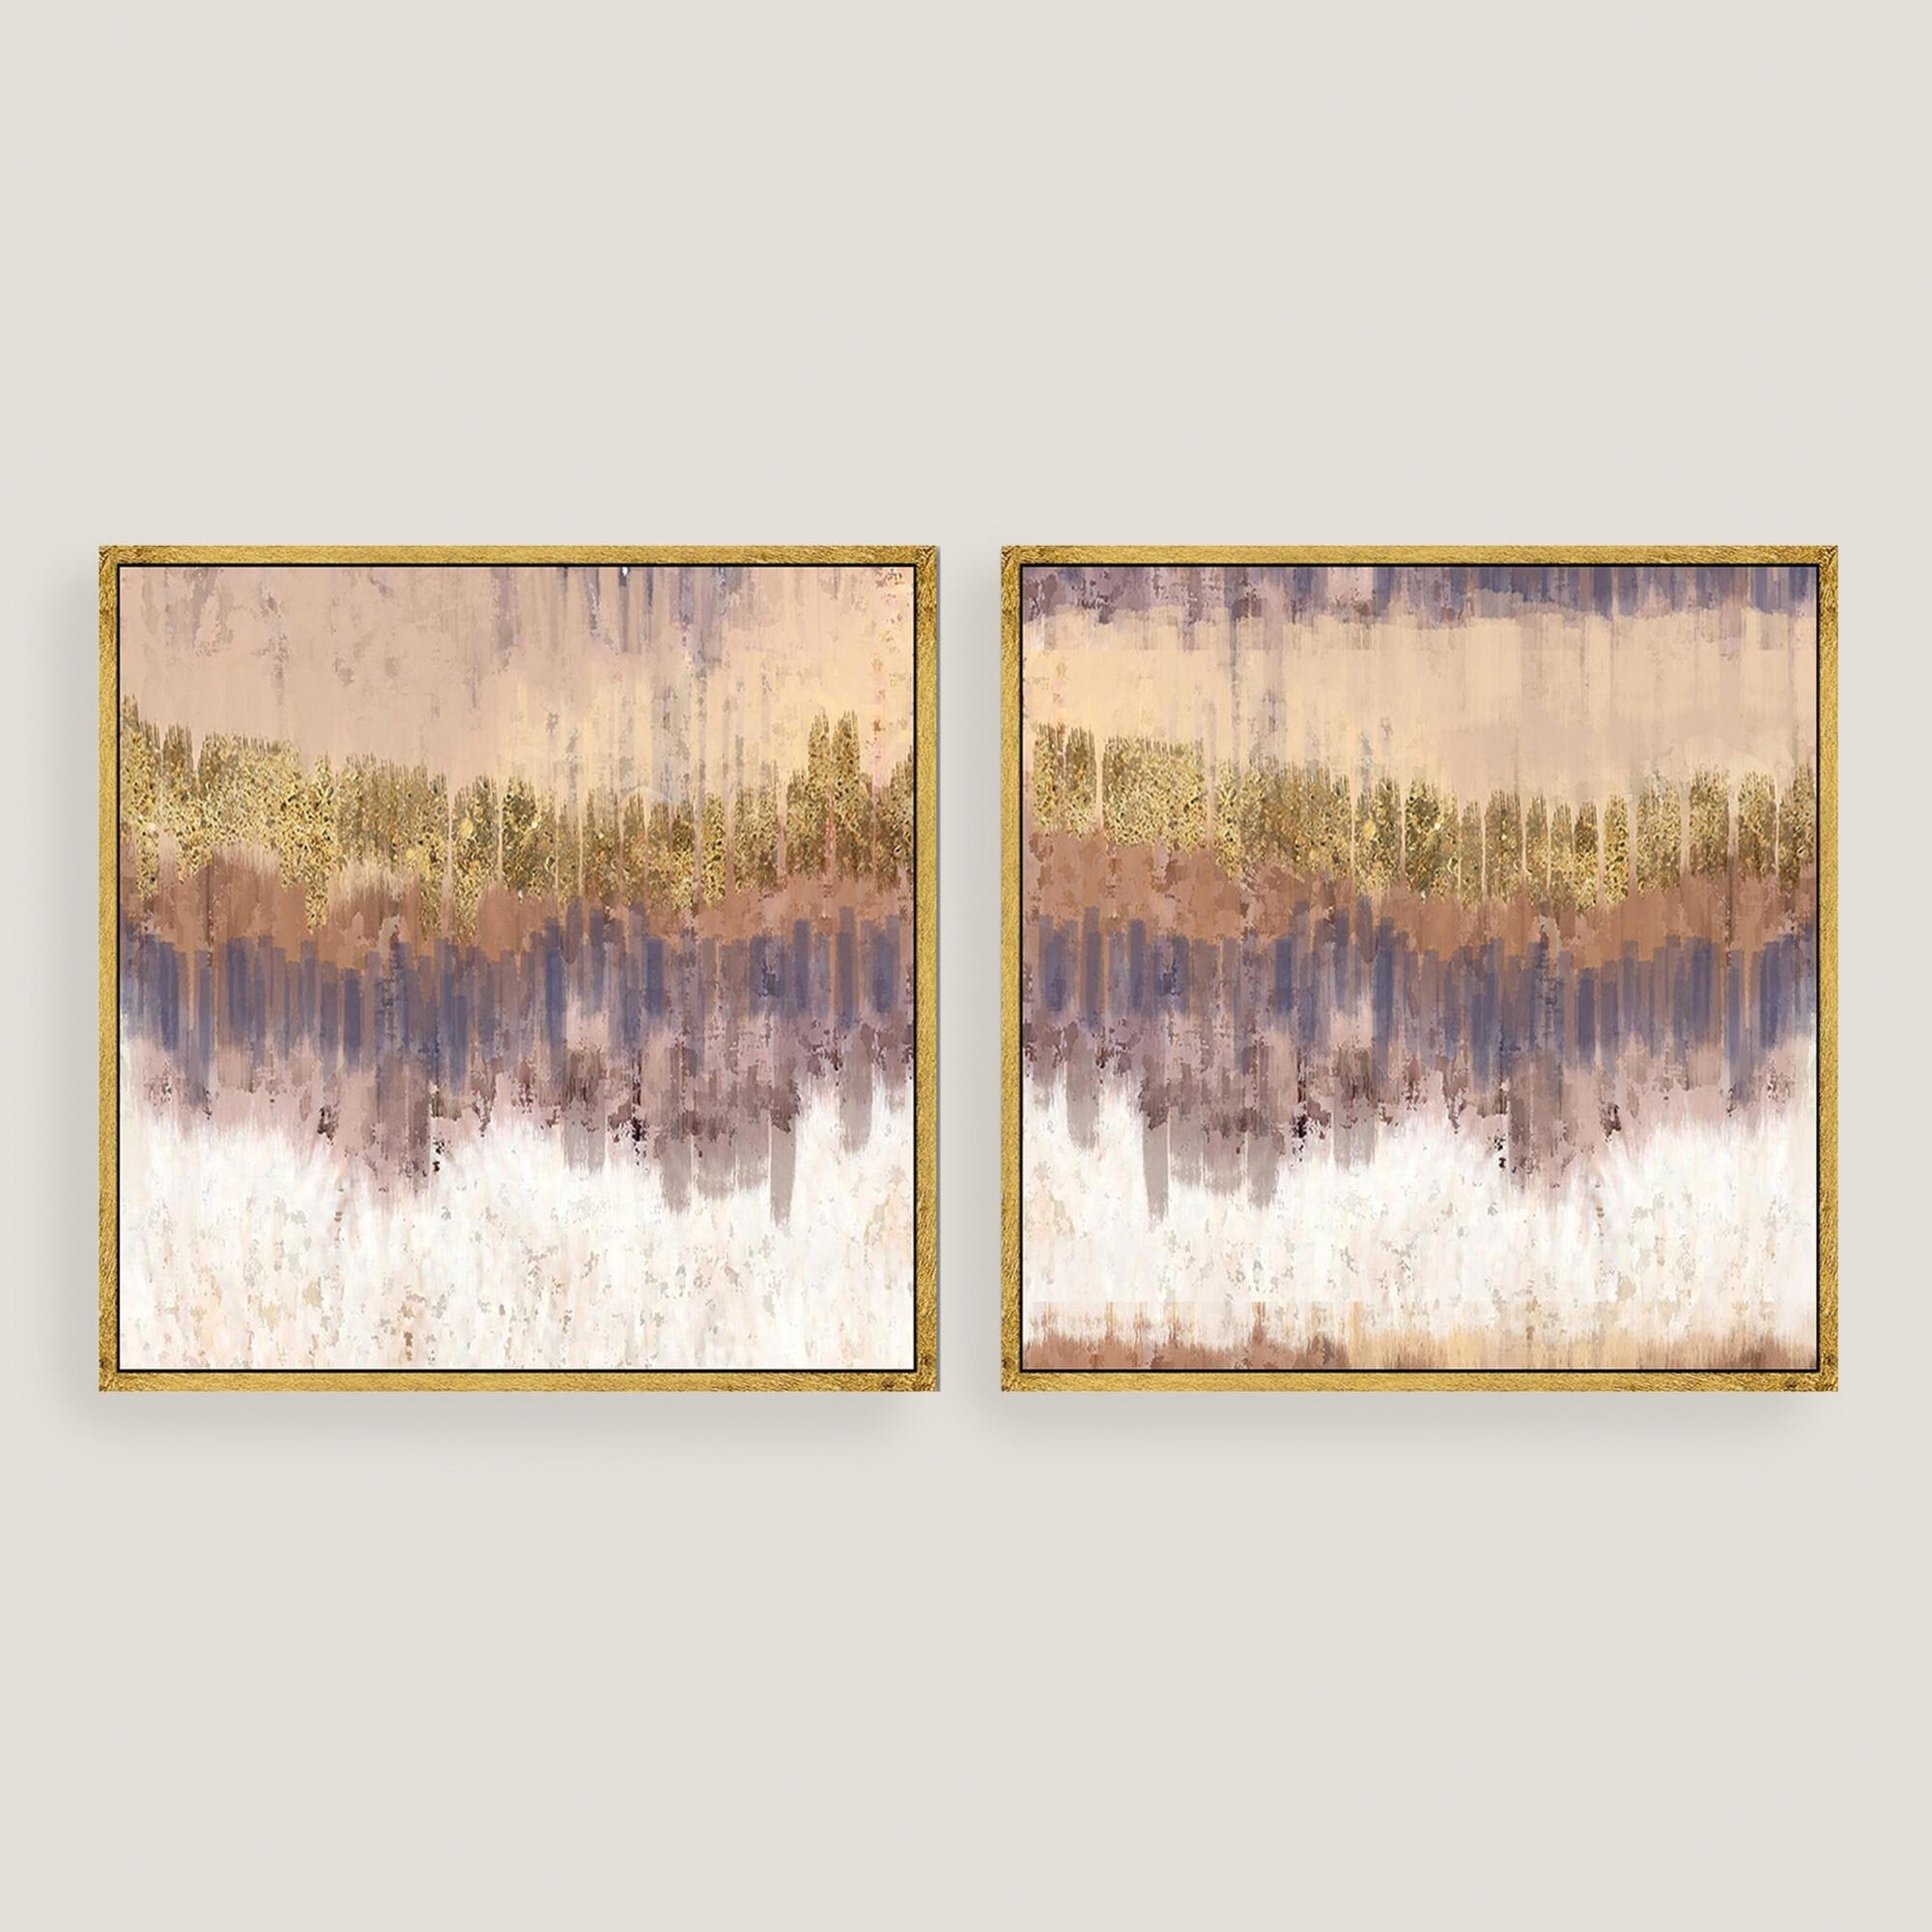 Wall Art Designs: Kirklands Wall Art Golden Field Abstract Canvas Inside Most Recently Released Abstract Leaves Wall Art (View 20 of 20)